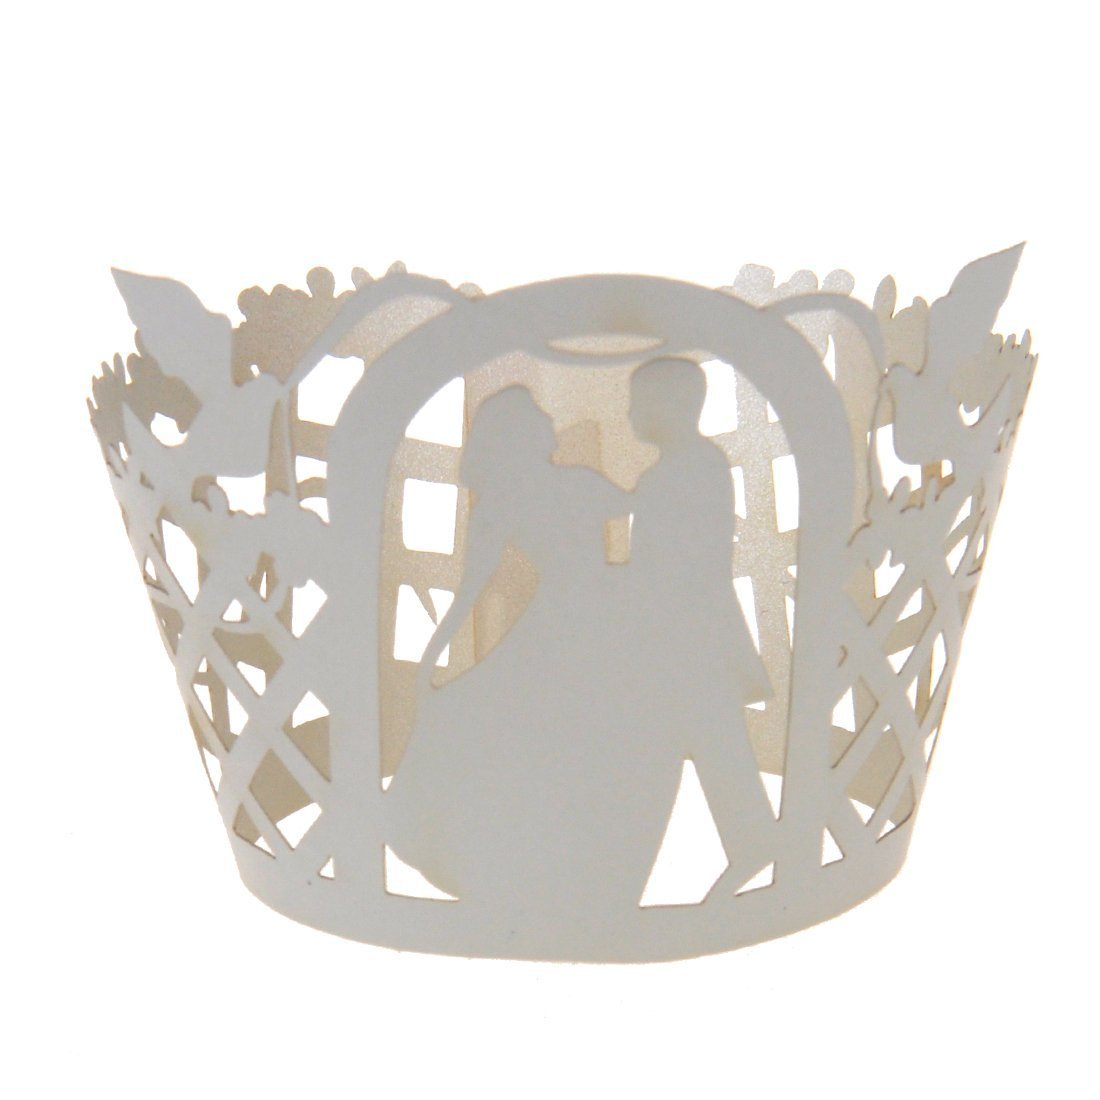 METABLE PACK OF 50 Bride Groom Muffin Cup Cake Wrapper Case Wedding Party Liner Decoration